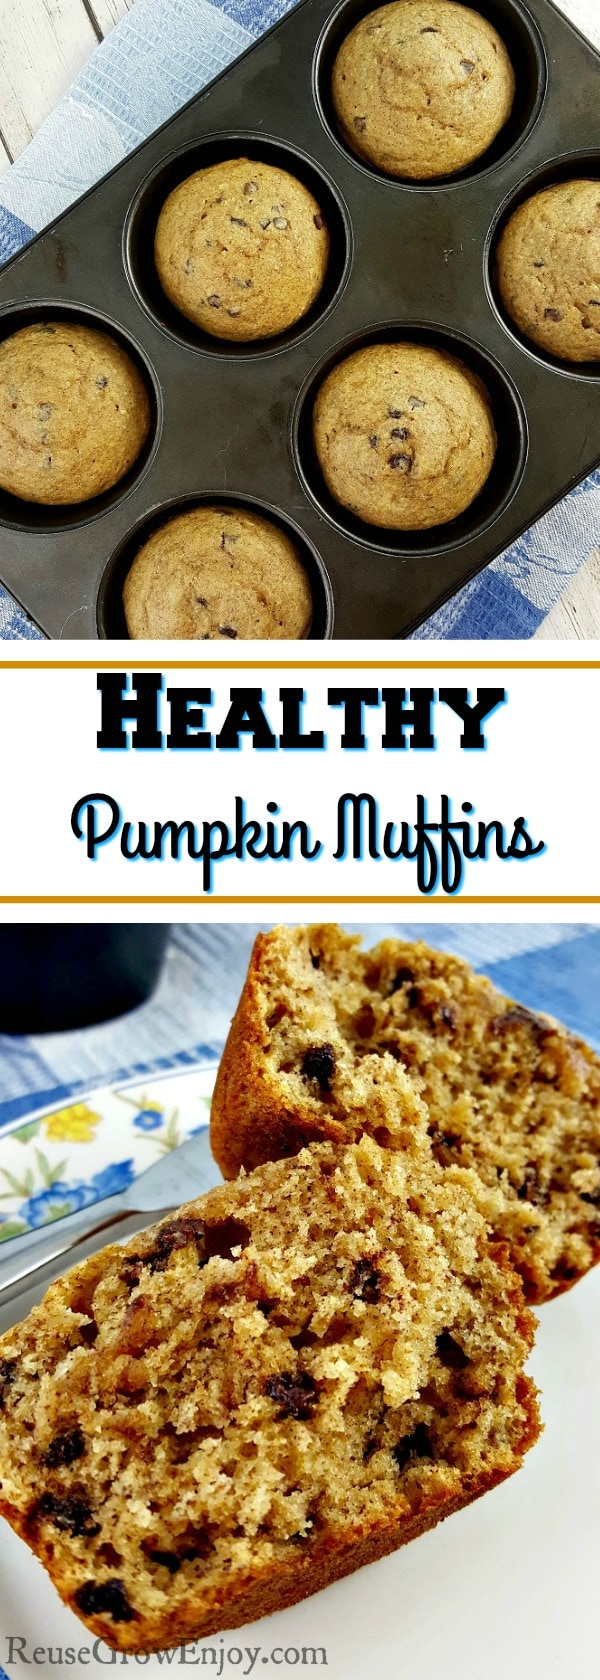 Love the taste of pumpkin but are trying to eat healthy? Check out this yummy recipe for healthy pumpkin muffins!